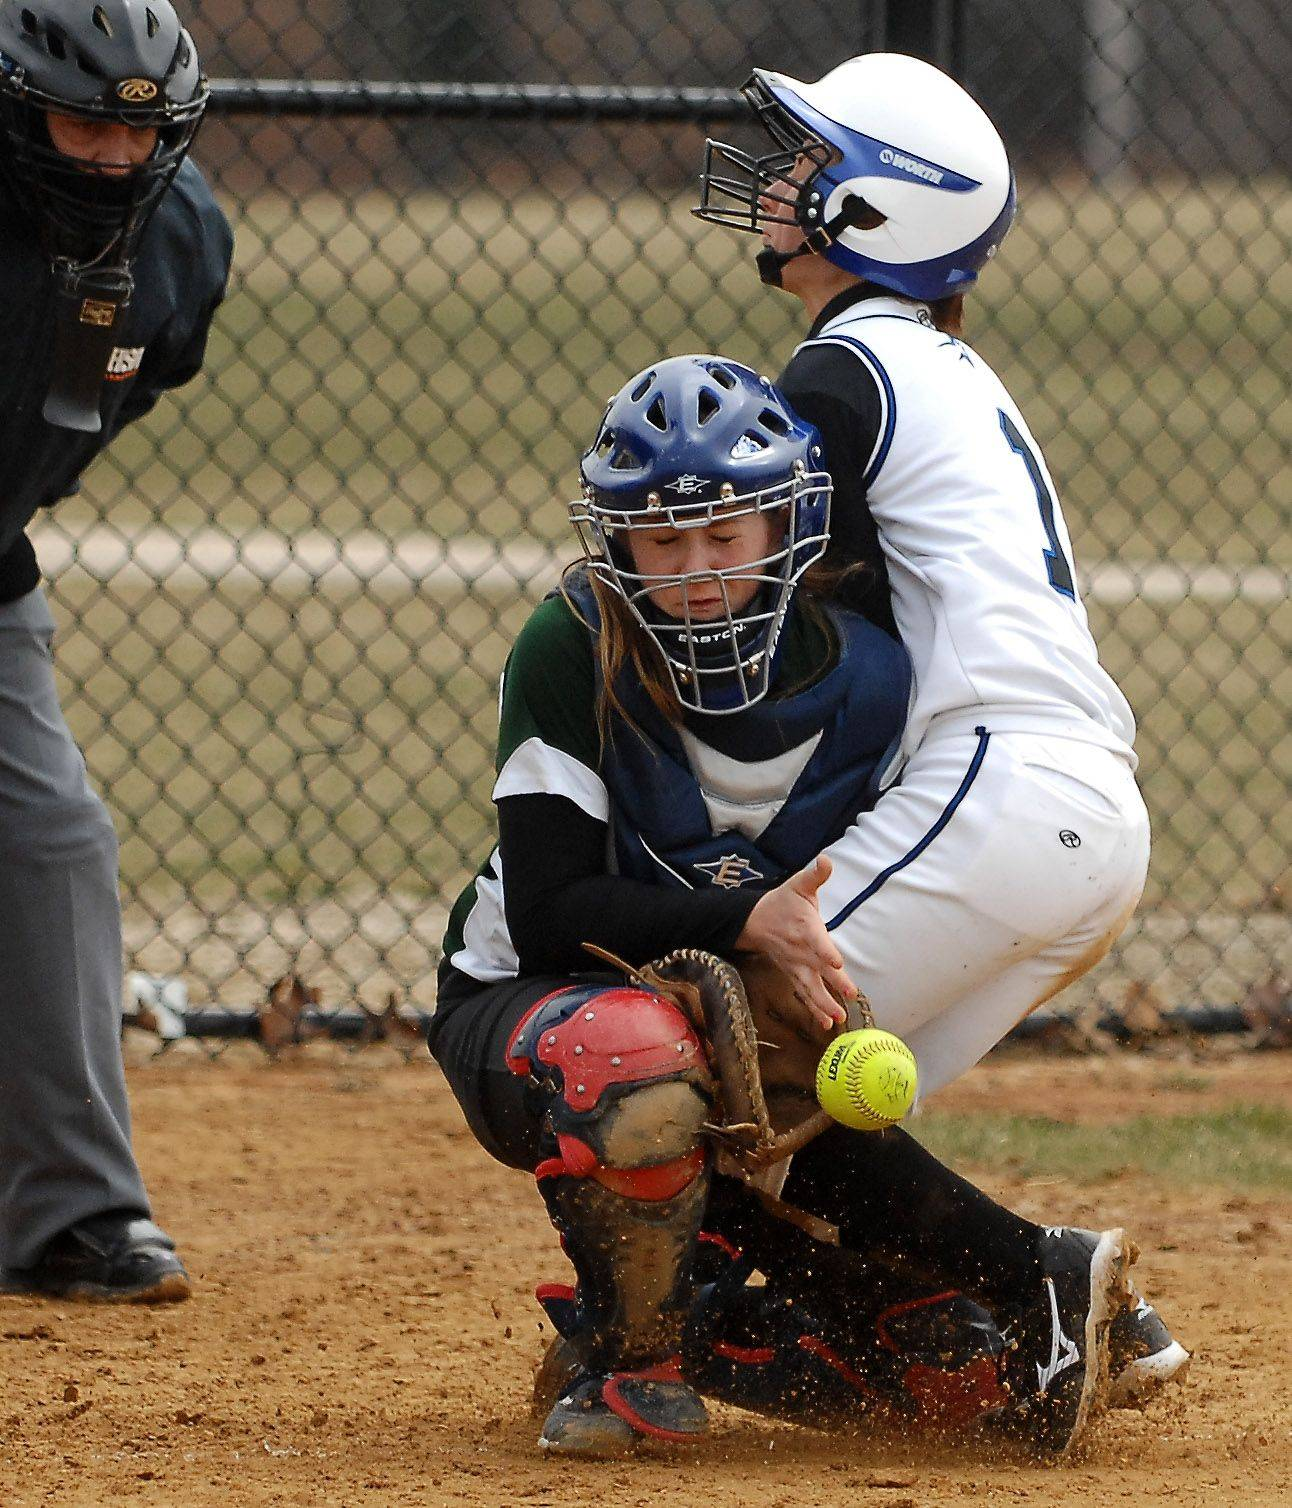 St. Charles North's Loren Cihlar collides with Plainfield Central catcher Carly Baker during Tuesday's game in St. Charles. Cihlar scored on the play.